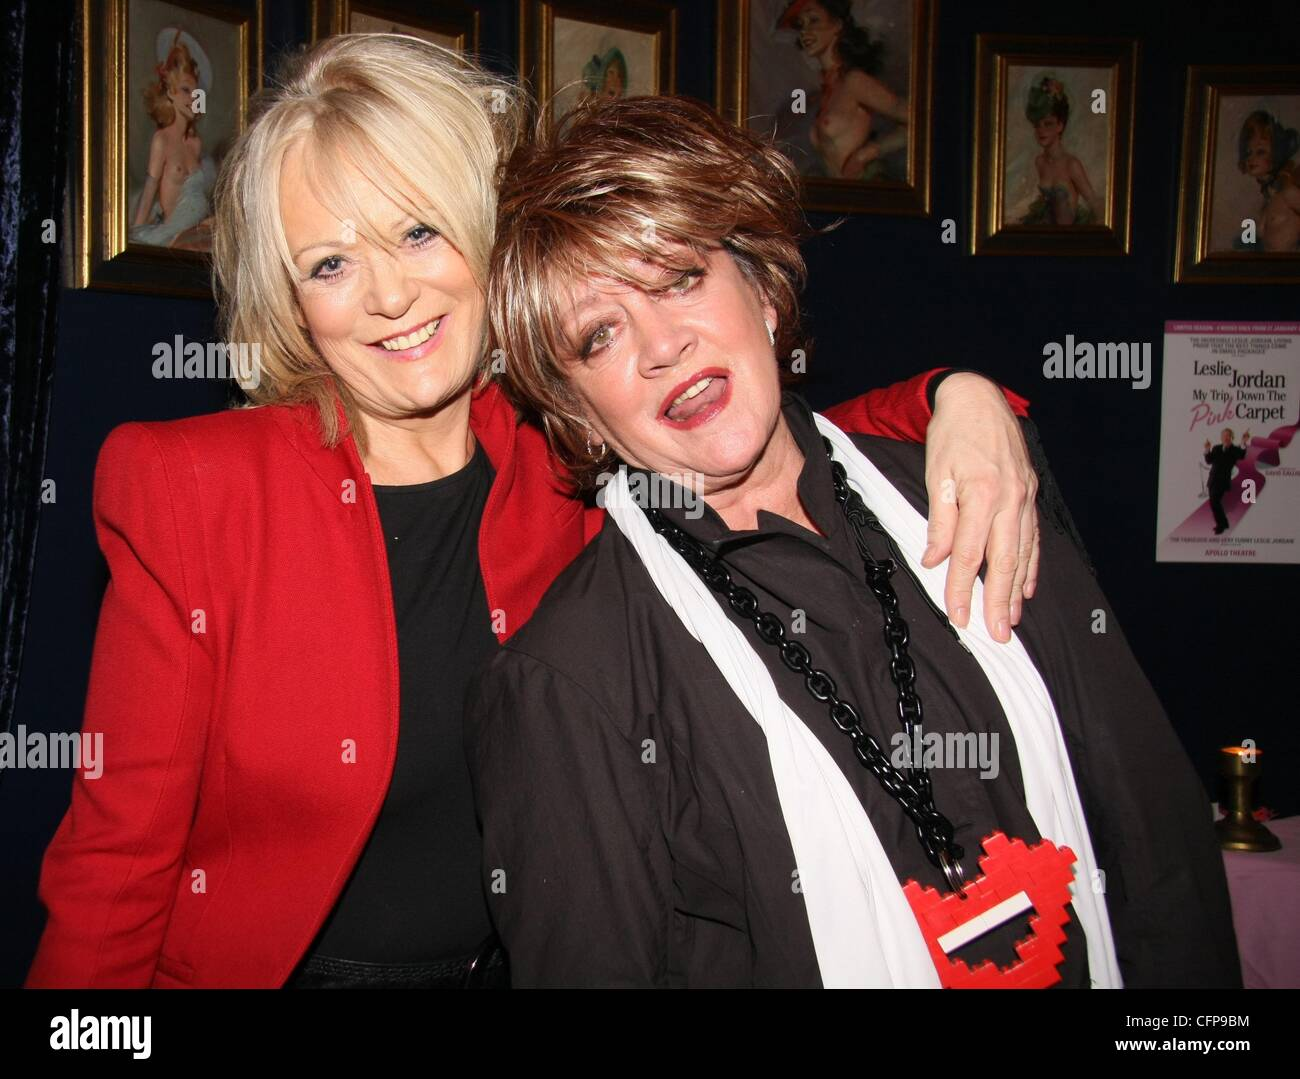 My New Chapter: Sherrie Hewson recommend